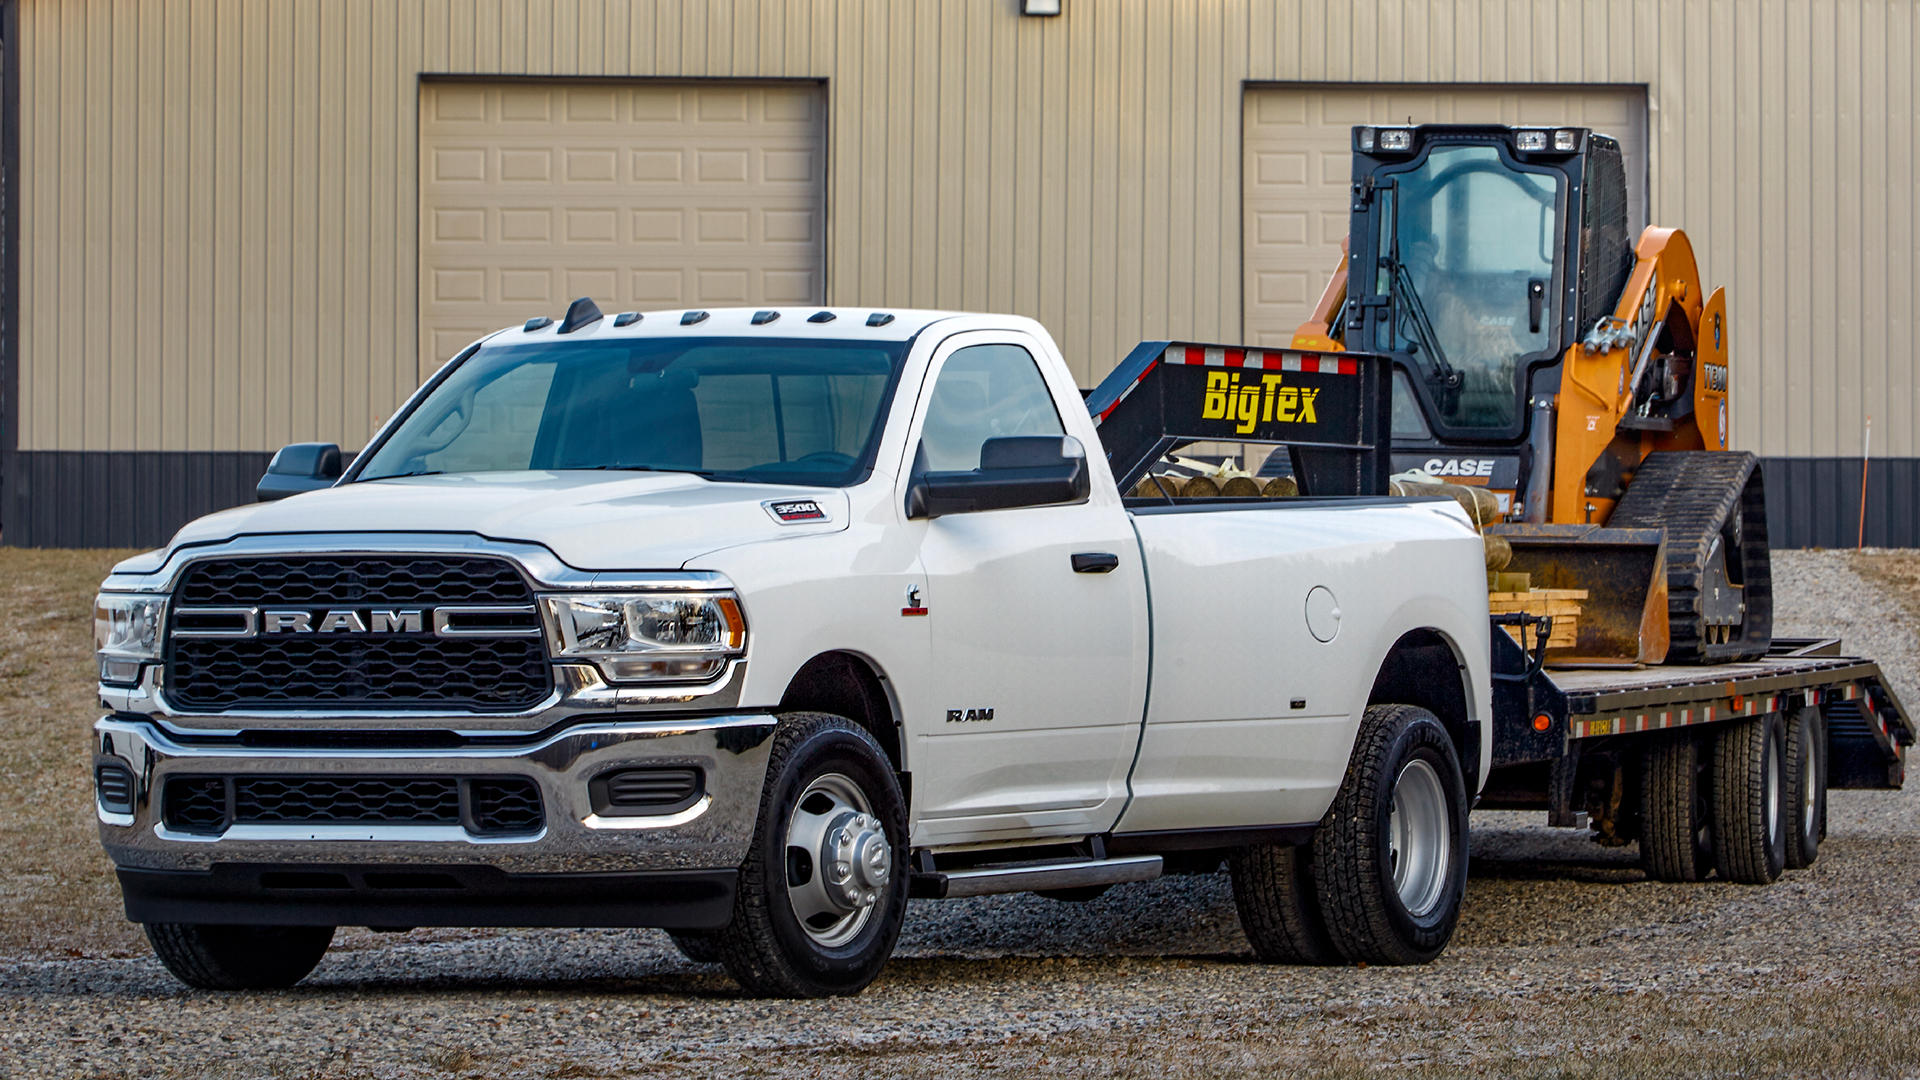 Video: Towing 35,100 pounds in the 2019 Ram Heavy Duty truck